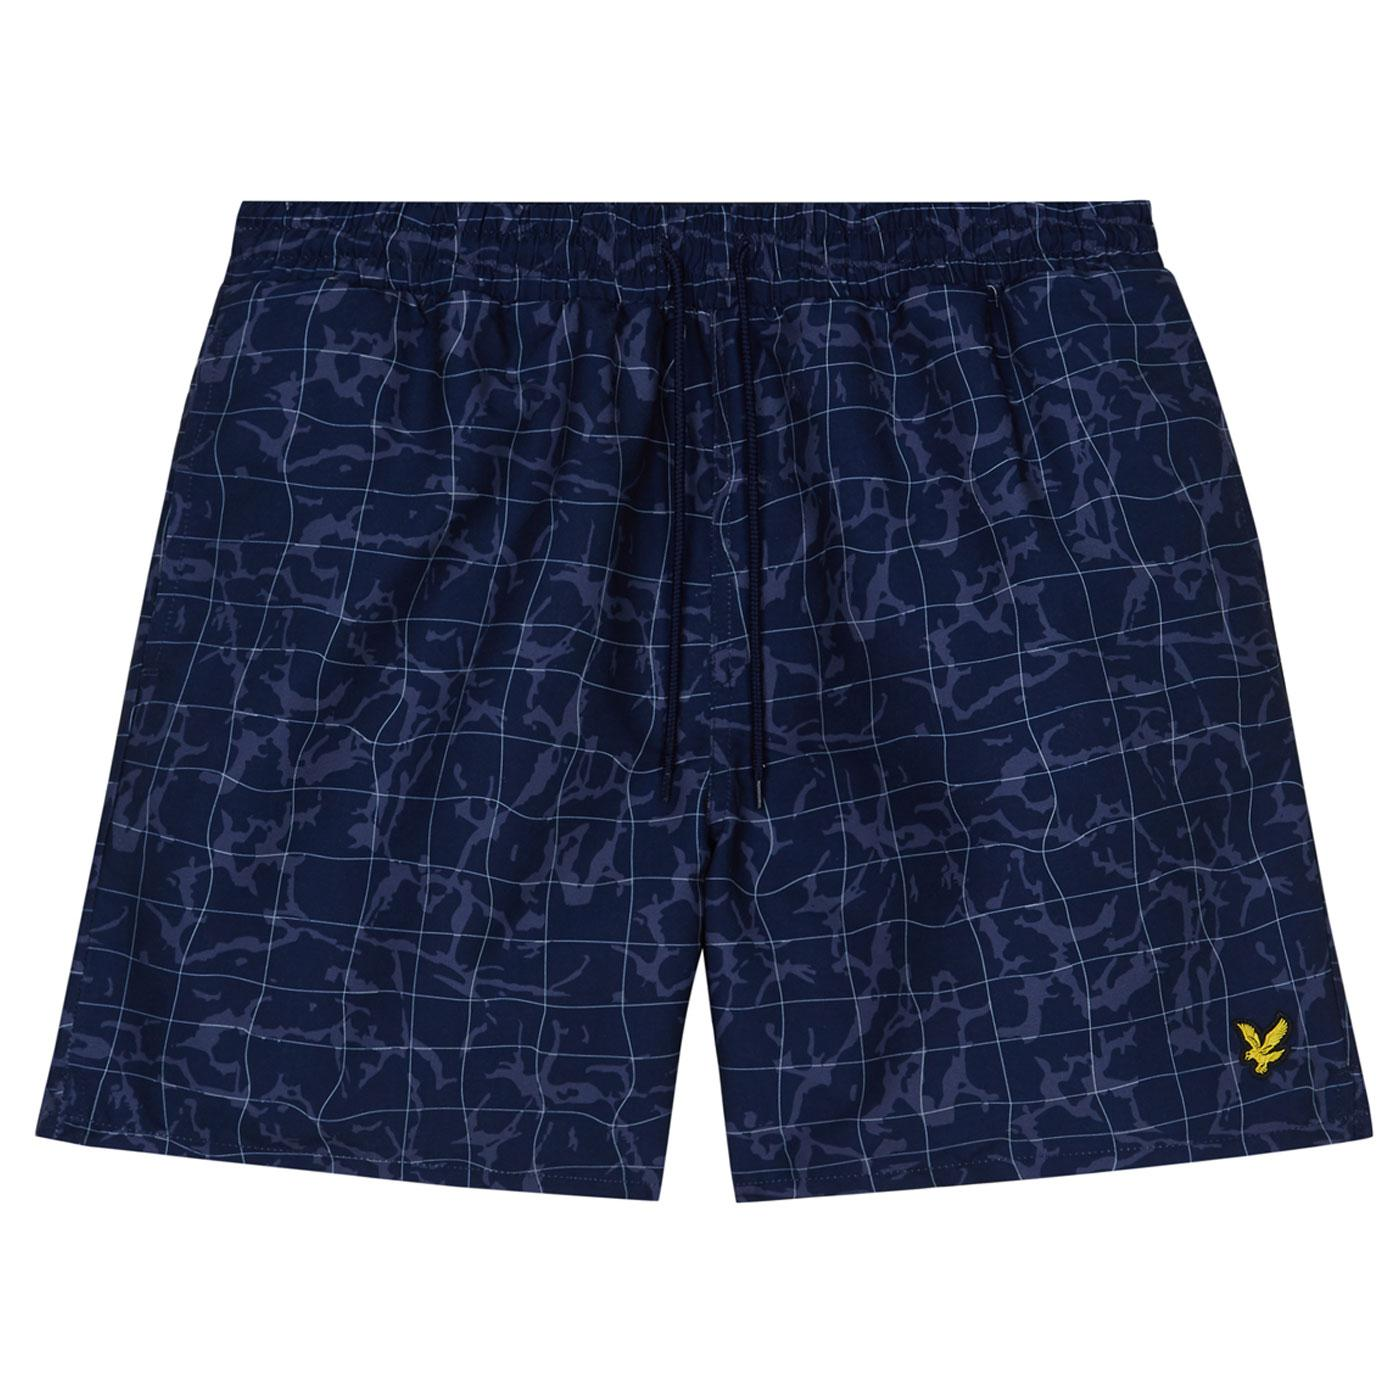 LYLE & SCOTT Retro Navy Pool Print Swim Shorts